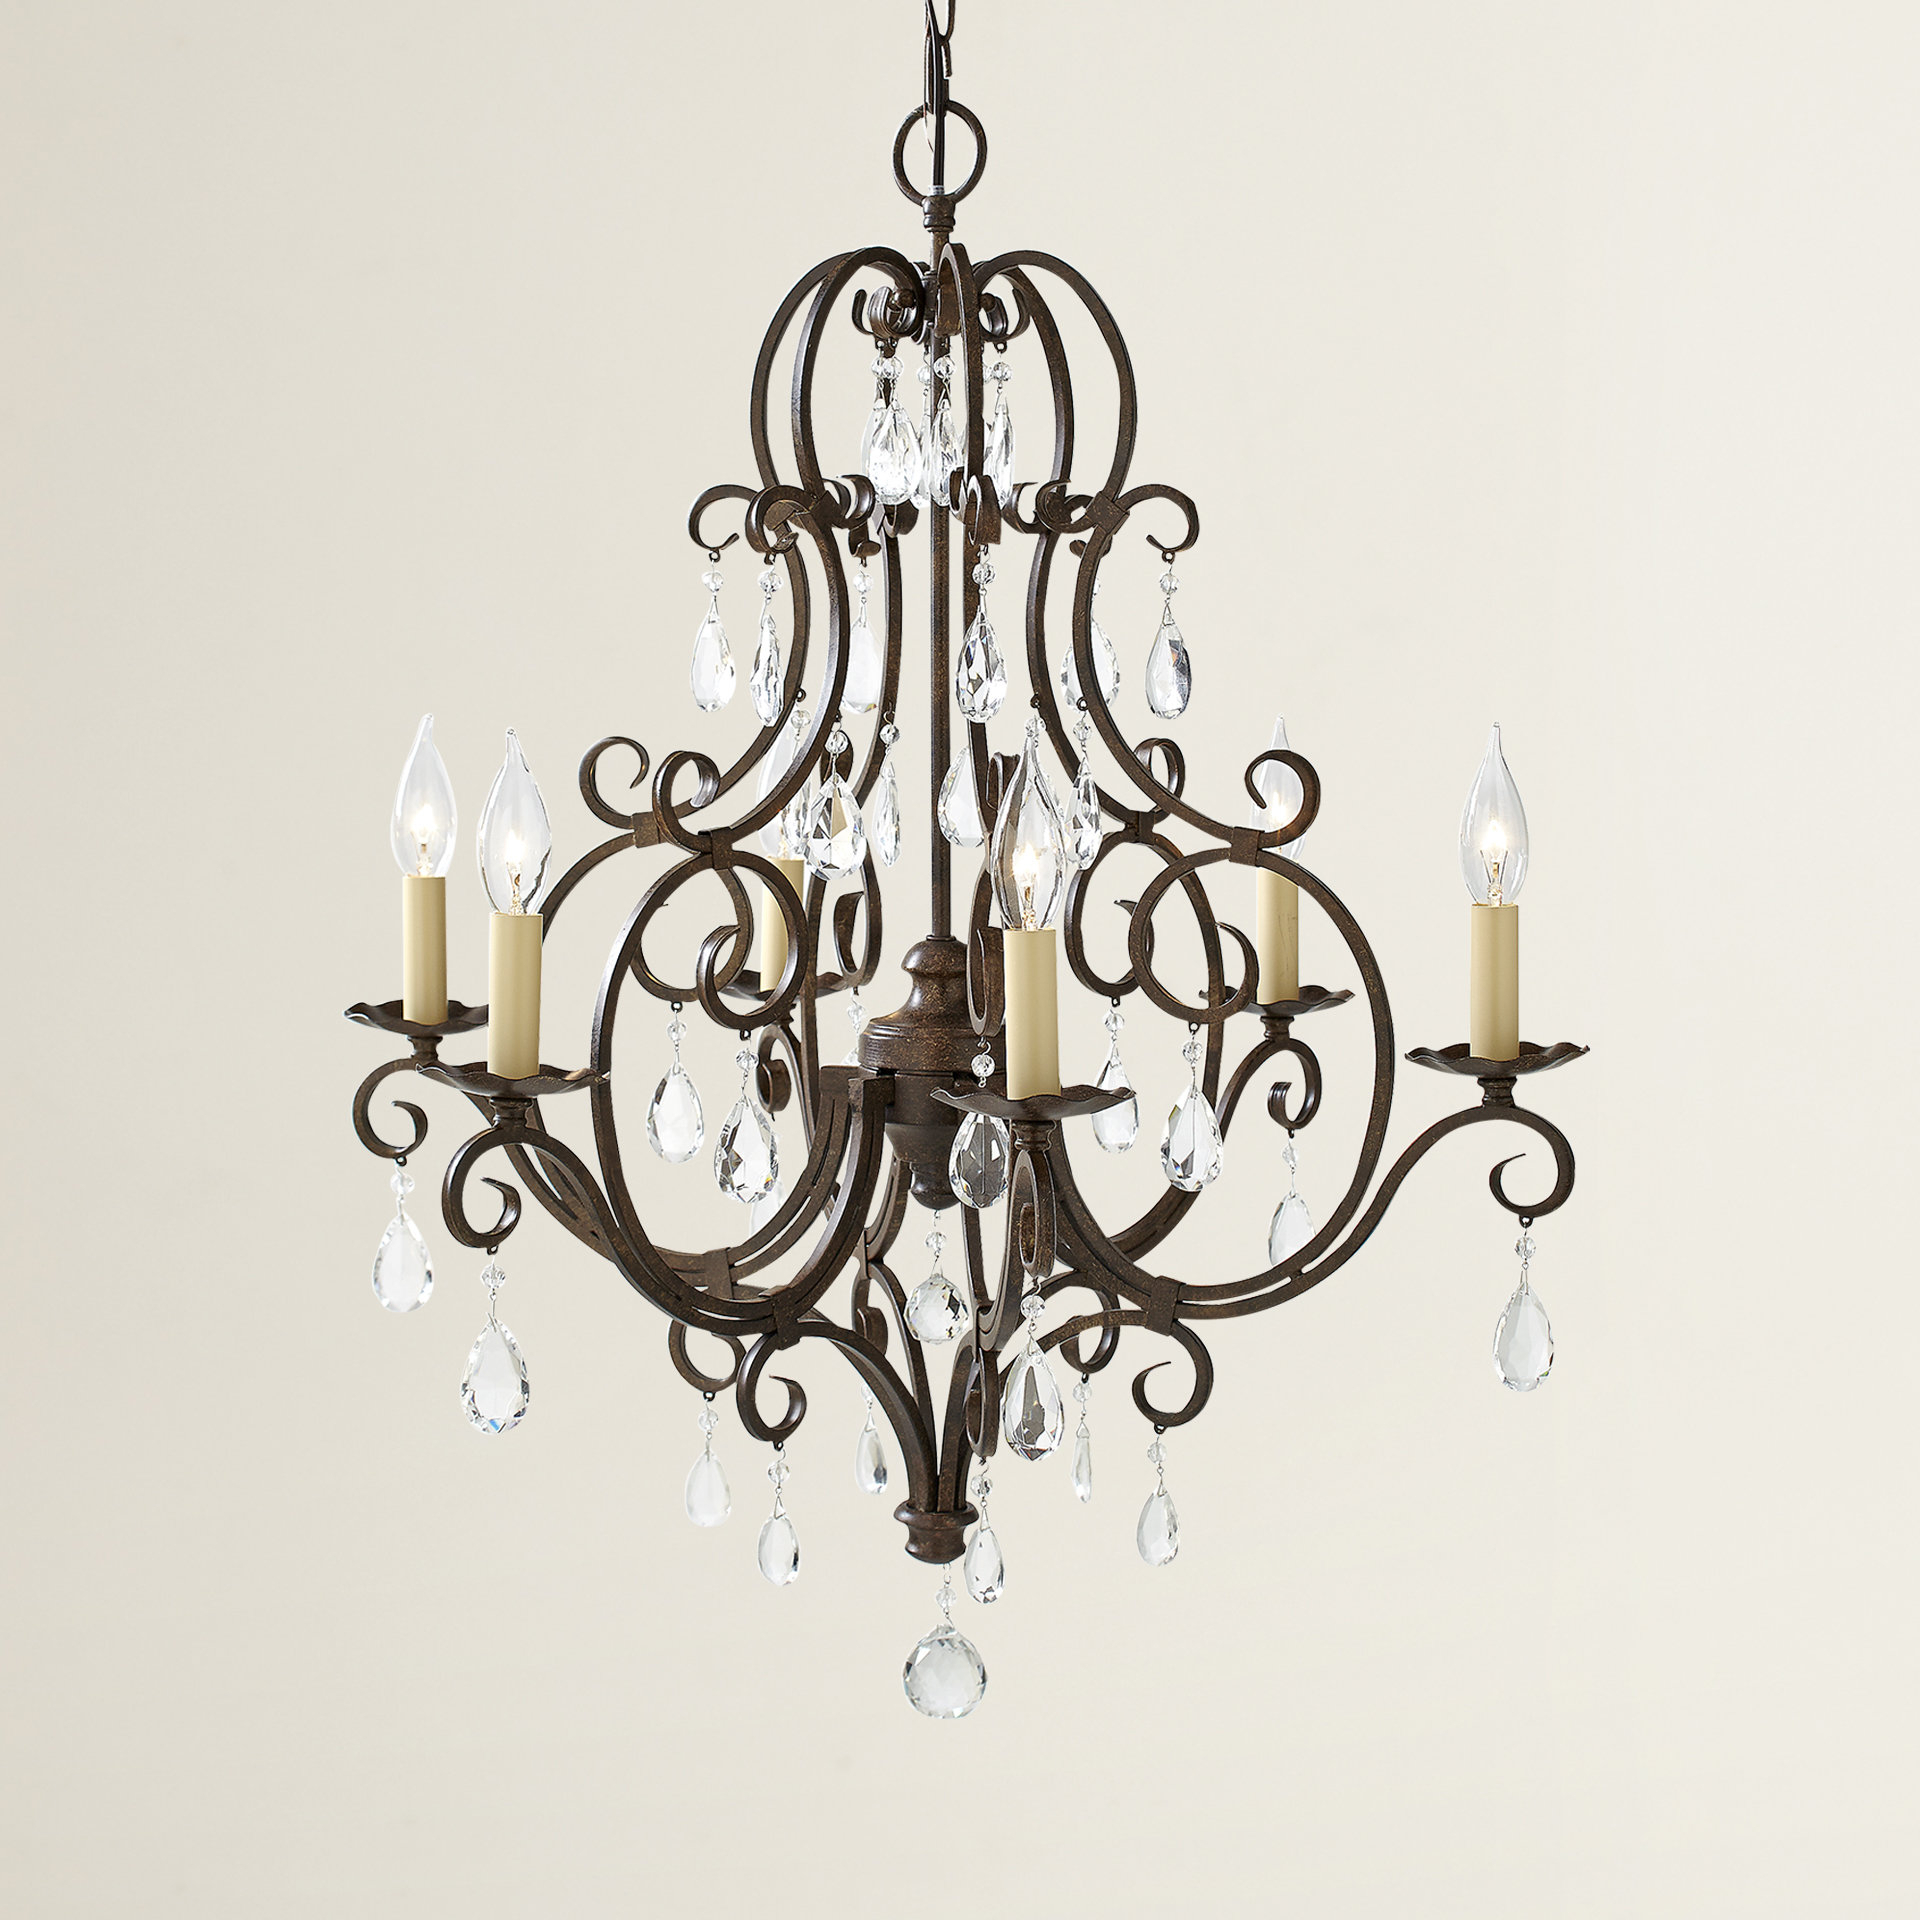 Royall 6 Light Candle Style Chandelier Pertaining To Armande Candle Style Chandeliers (Image 26 of 30)